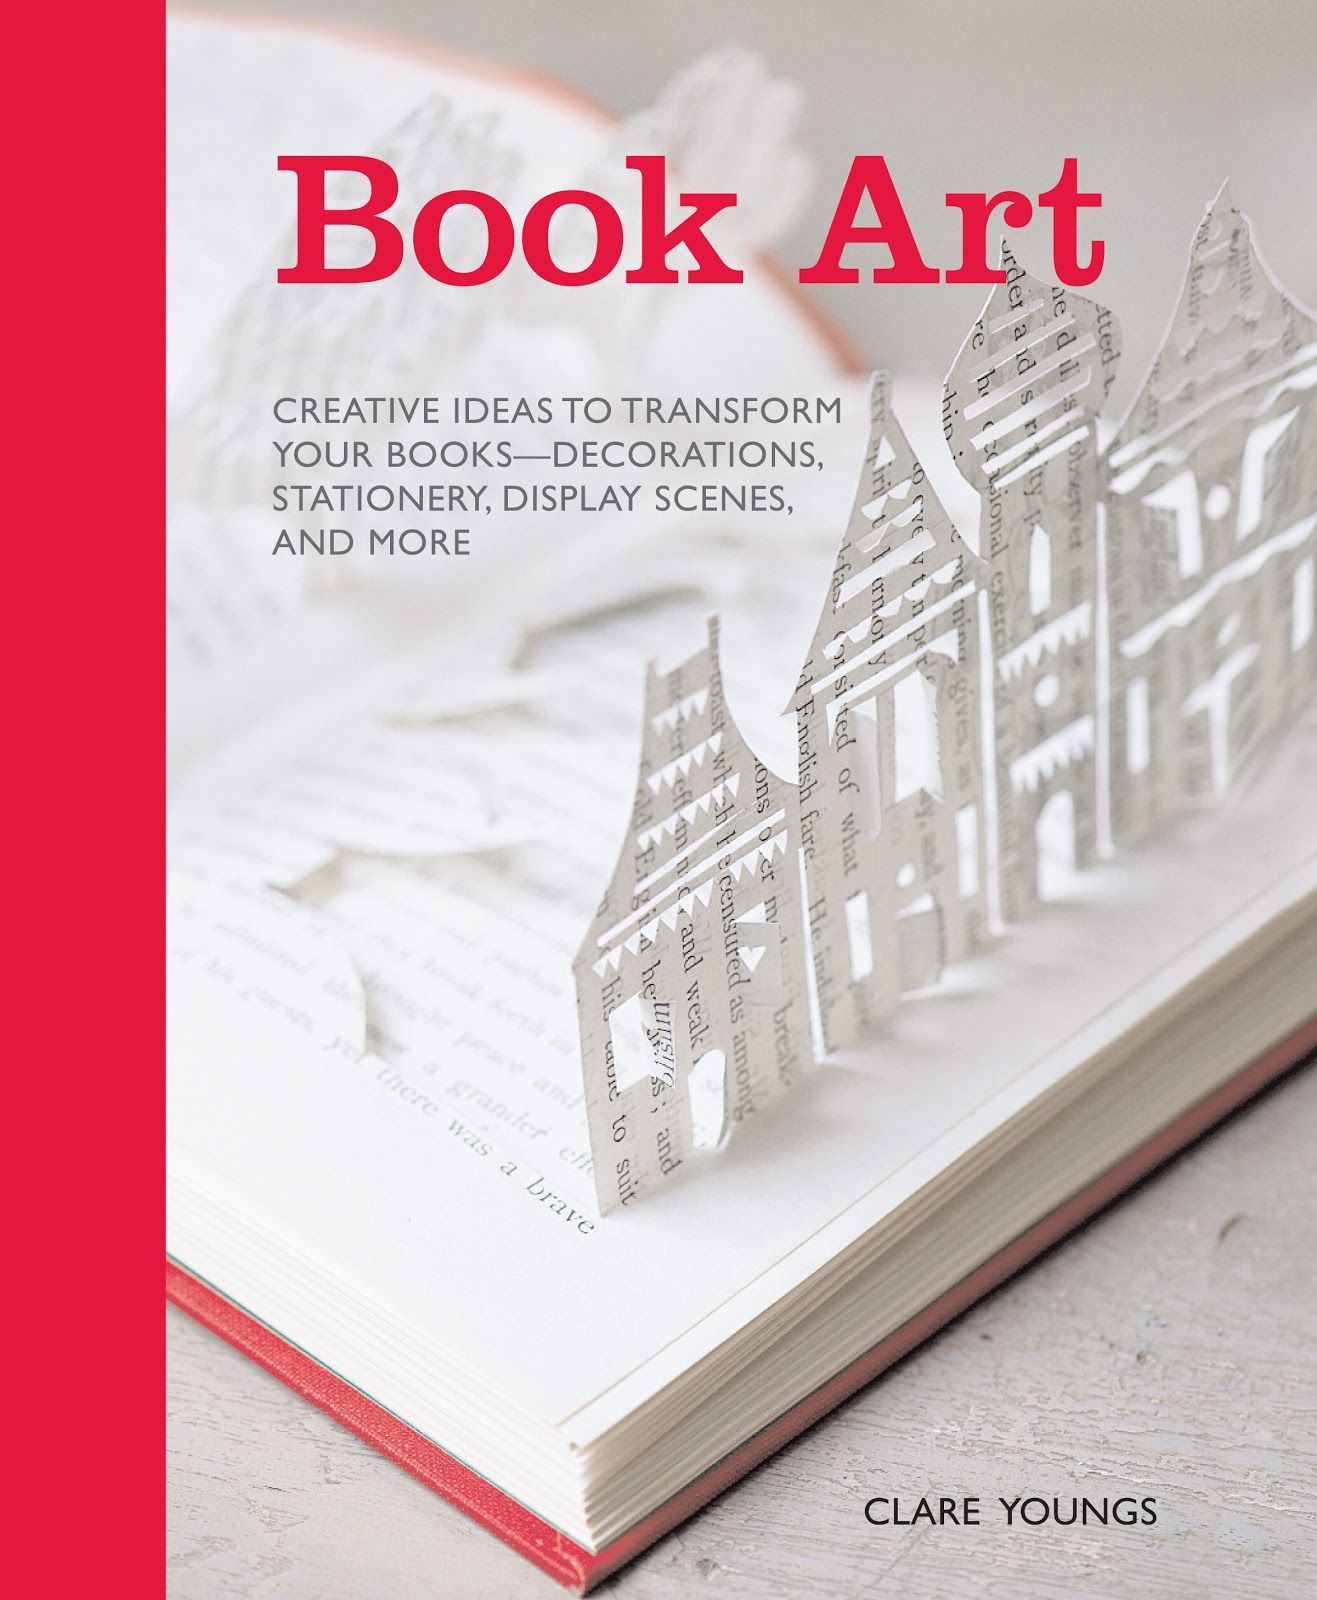 Amazing Book by Clare Youngs - 'Book Art - Creative Ideas to Transform Your Books_ Decorations, Stationery, Display Scenes, and More'